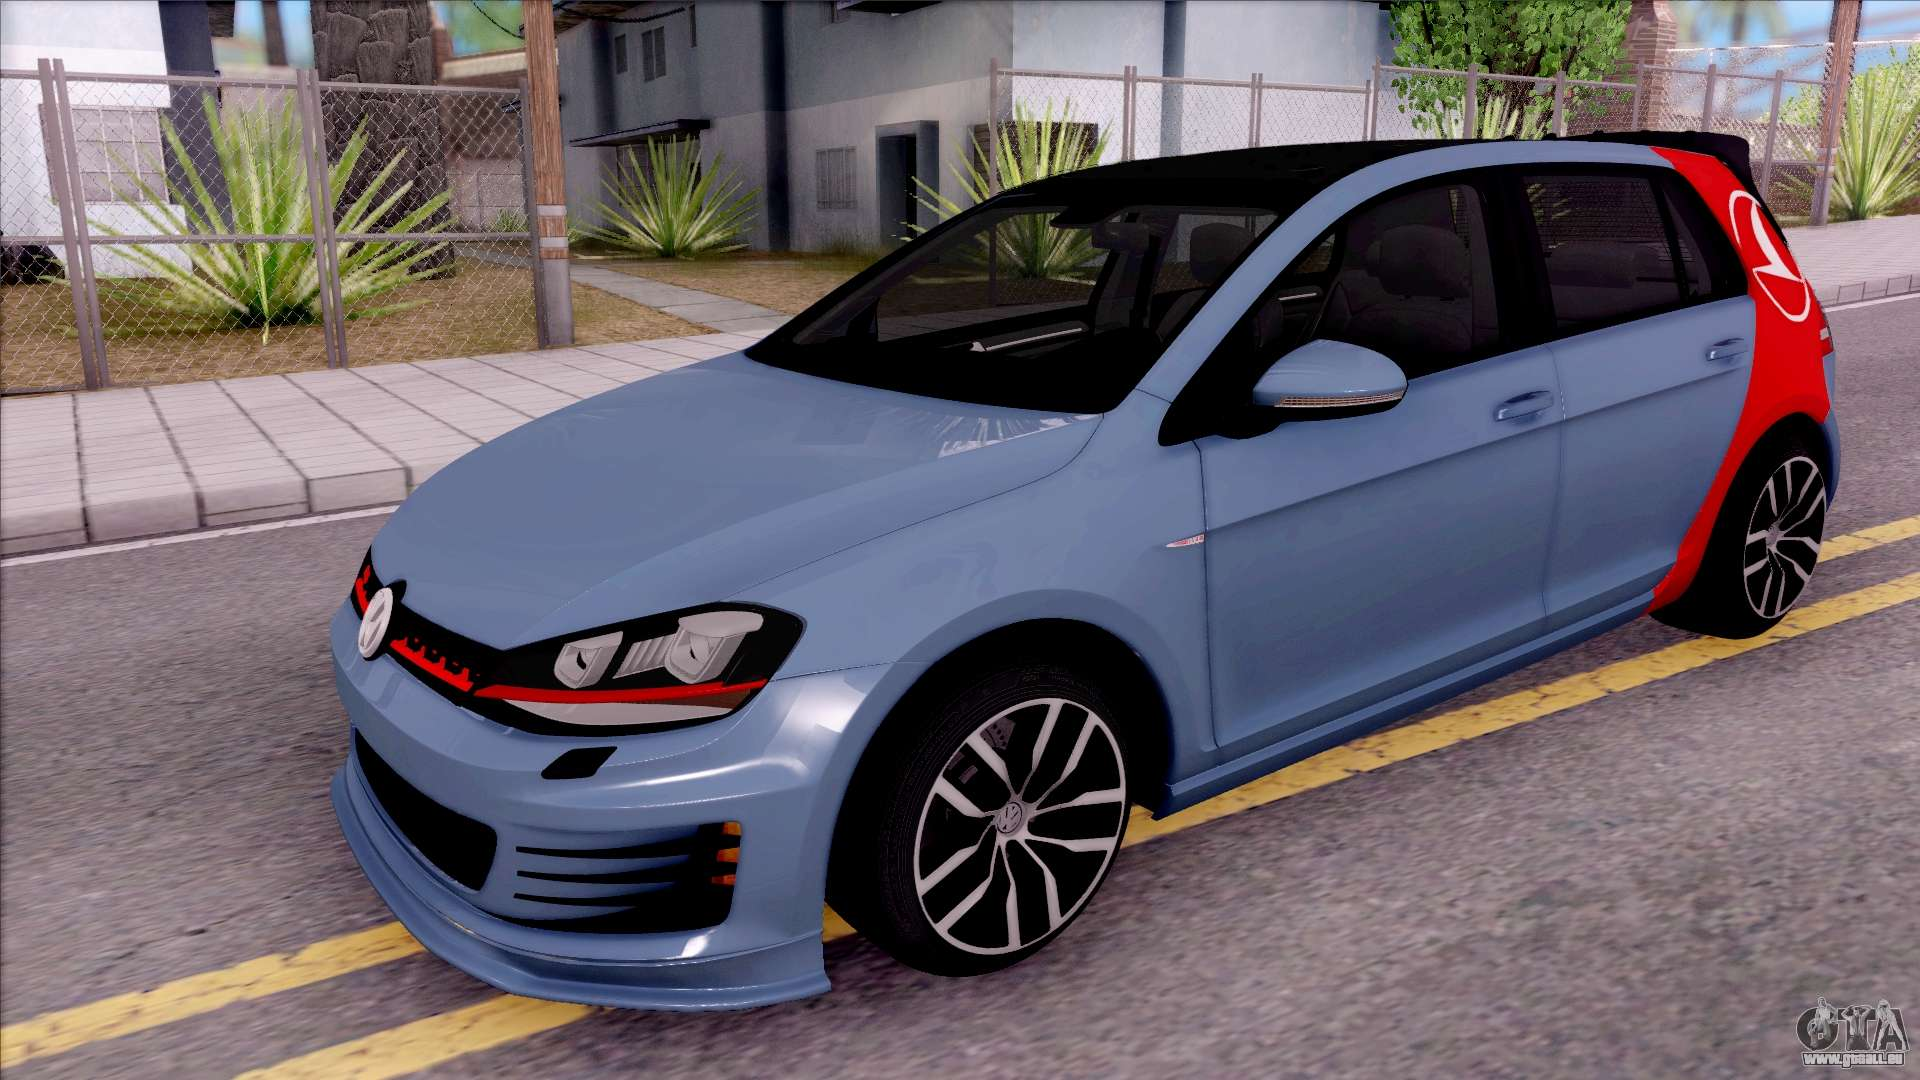 volkswagen golf 7 gti turkish airlines pour gta san andreas. Black Bedroom Furniture Sets. Home Design Ideas